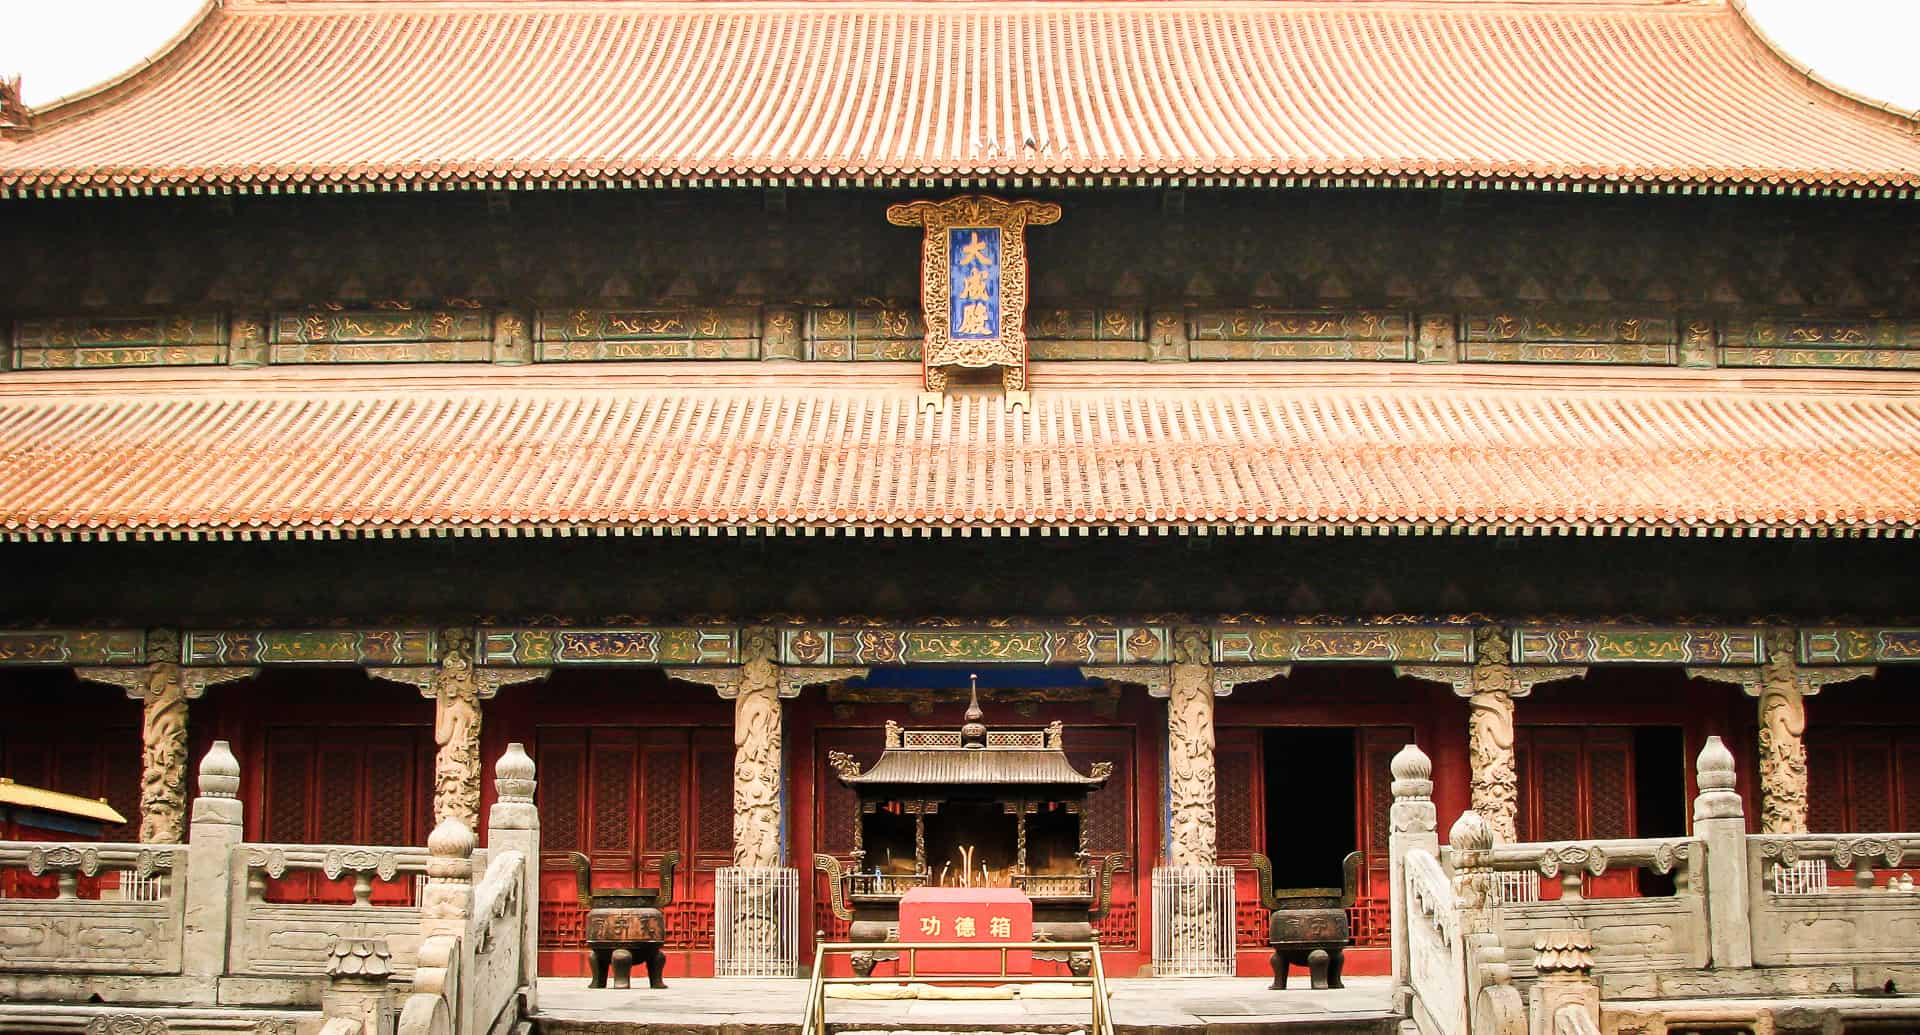 The Qufu Temple of Confucius and Confucius Forest